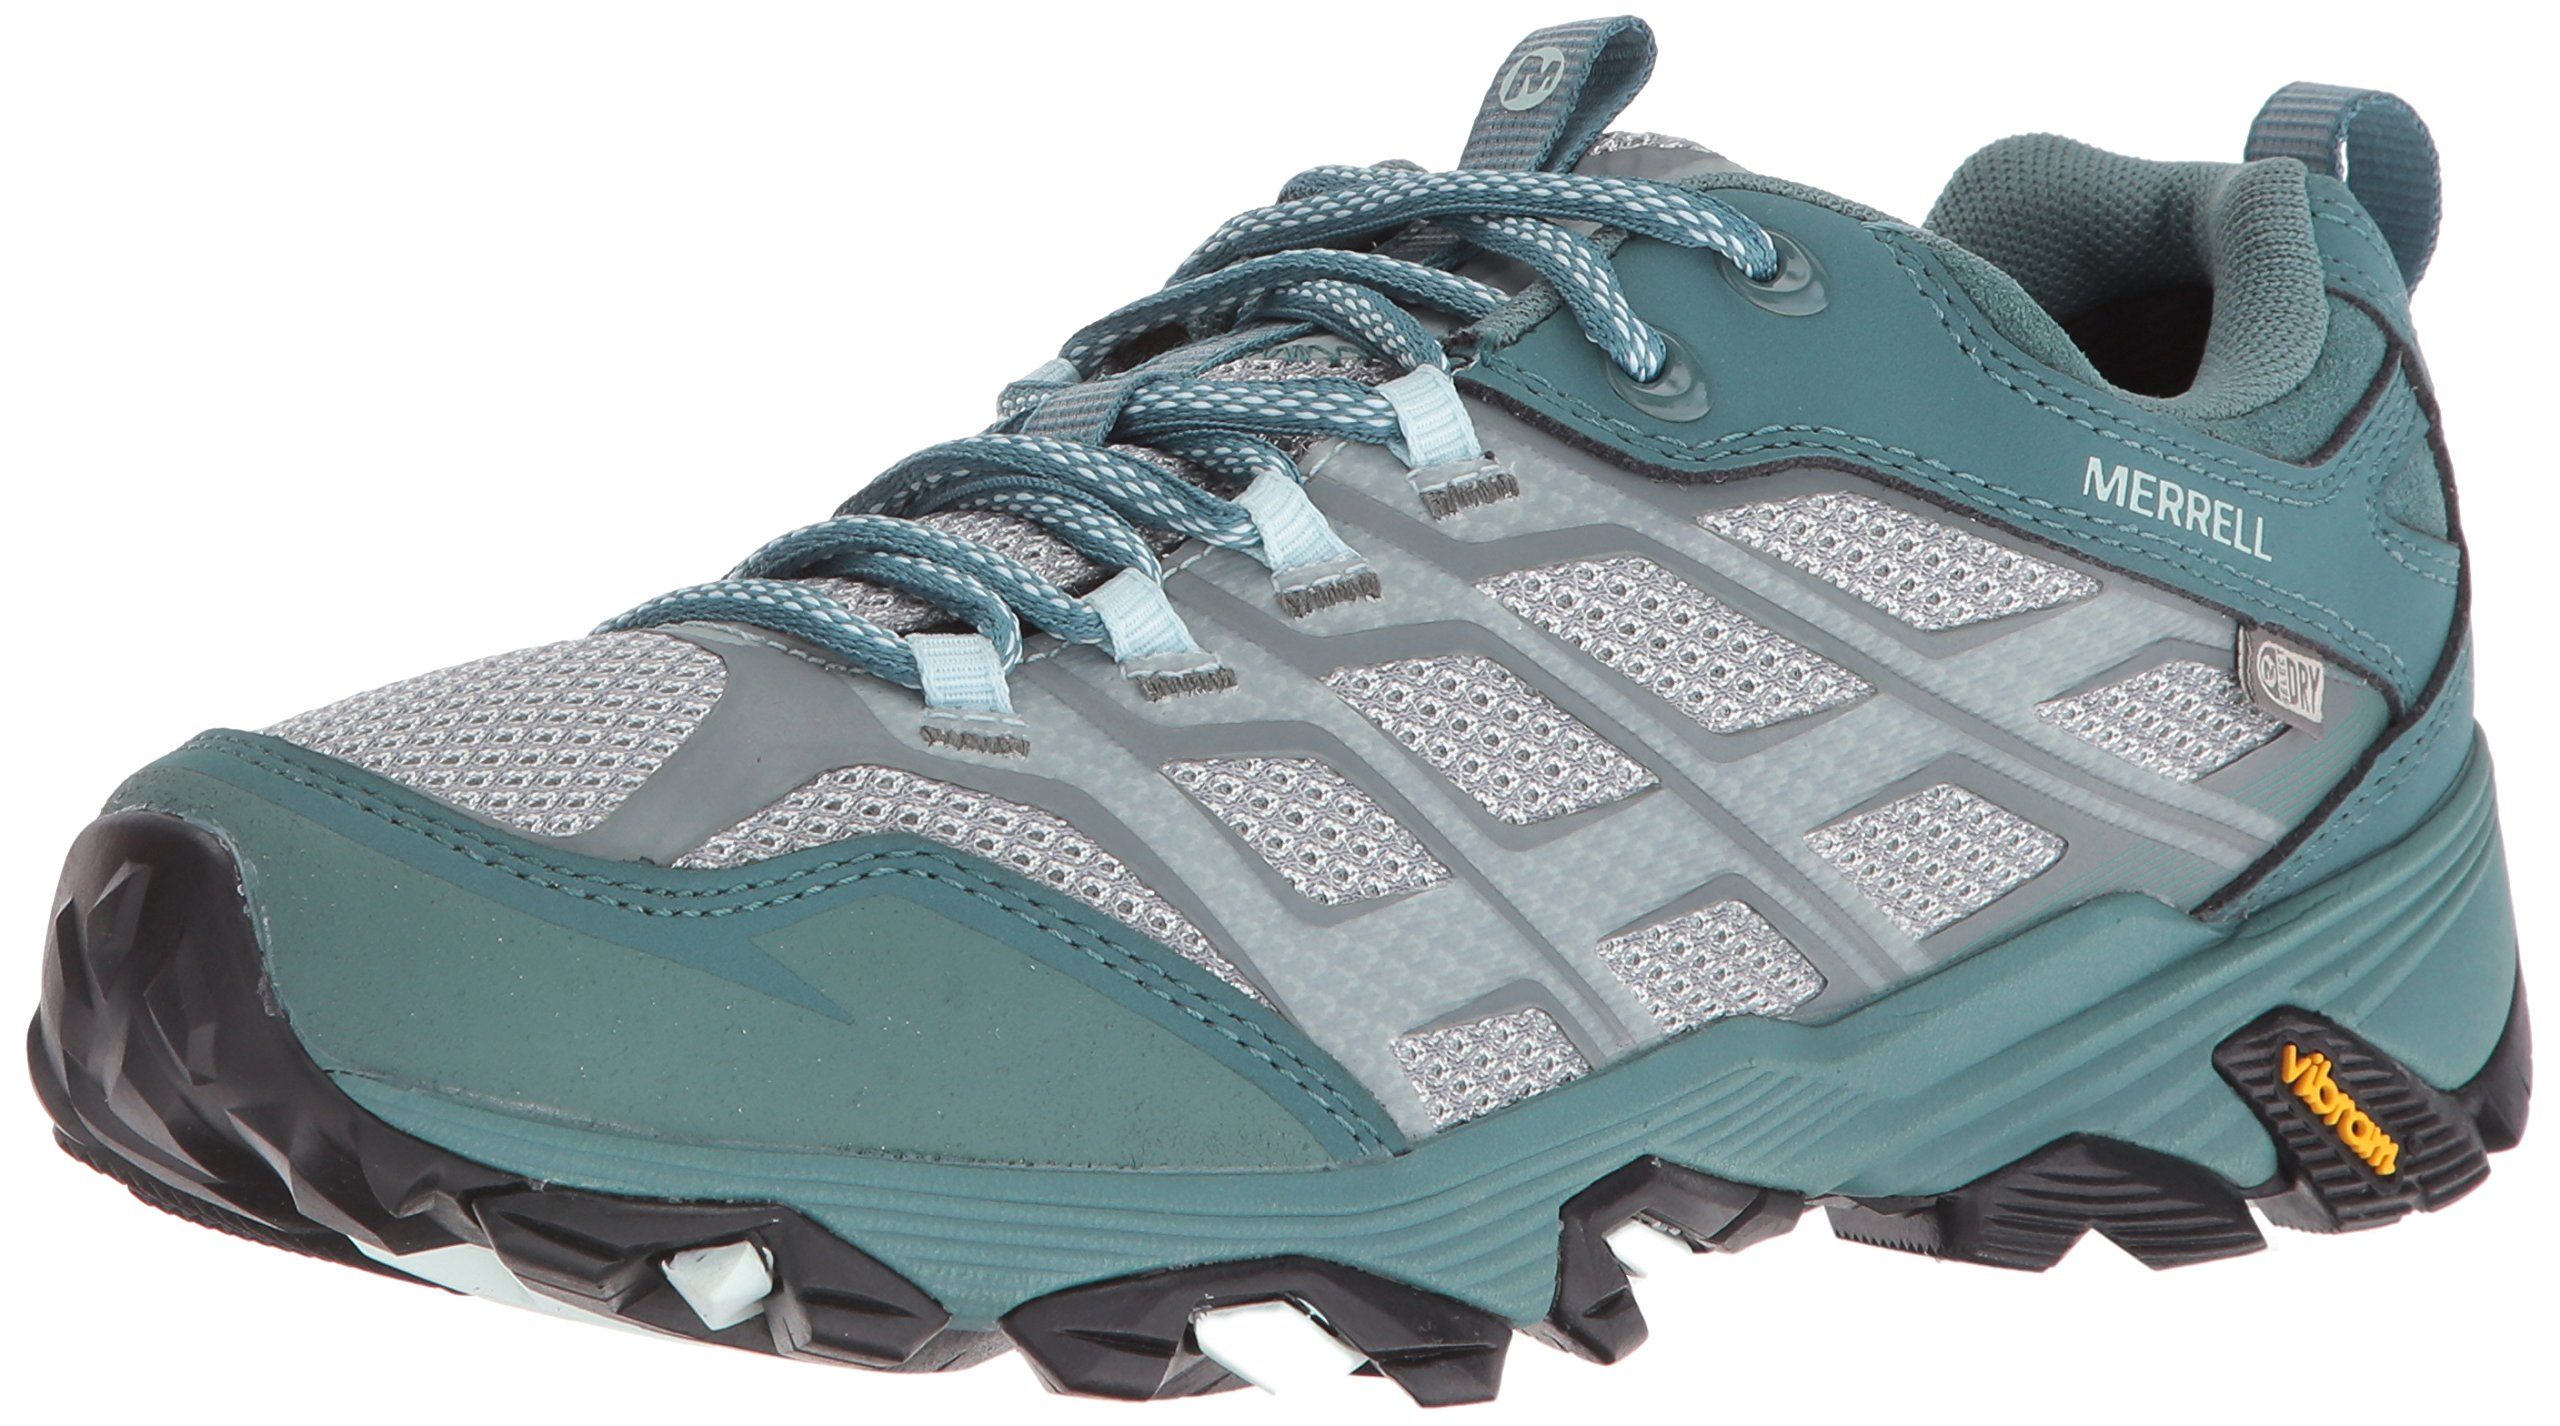 Merrell Women's Moab FST Waterproof Hiking Boot, Sea Pine, 7.5 M US